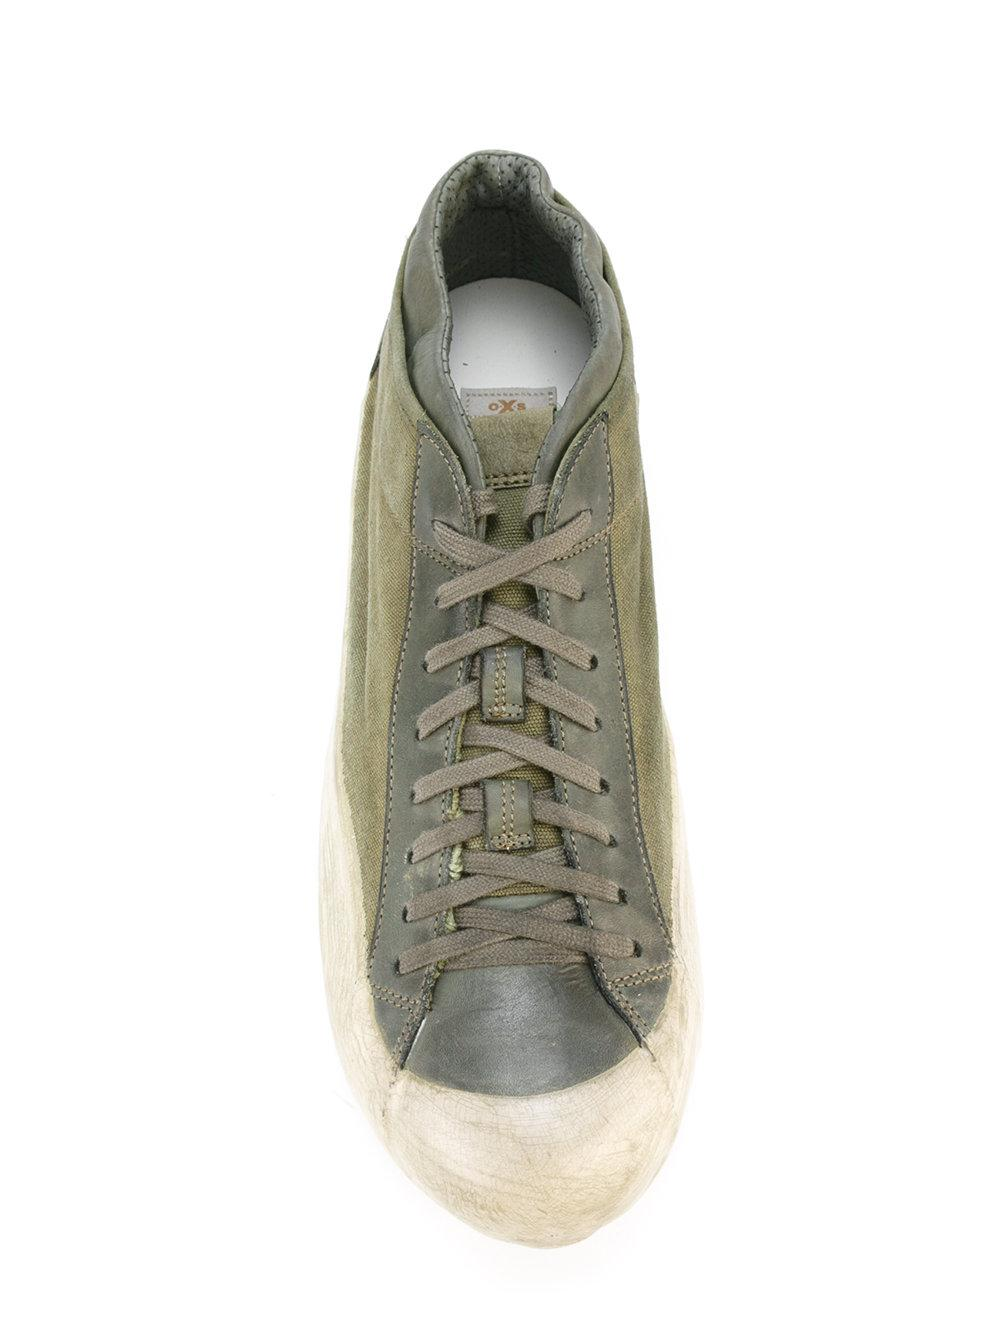 Lyst Oxs Rubber Soul Lace Up Sneakers In Green For Men